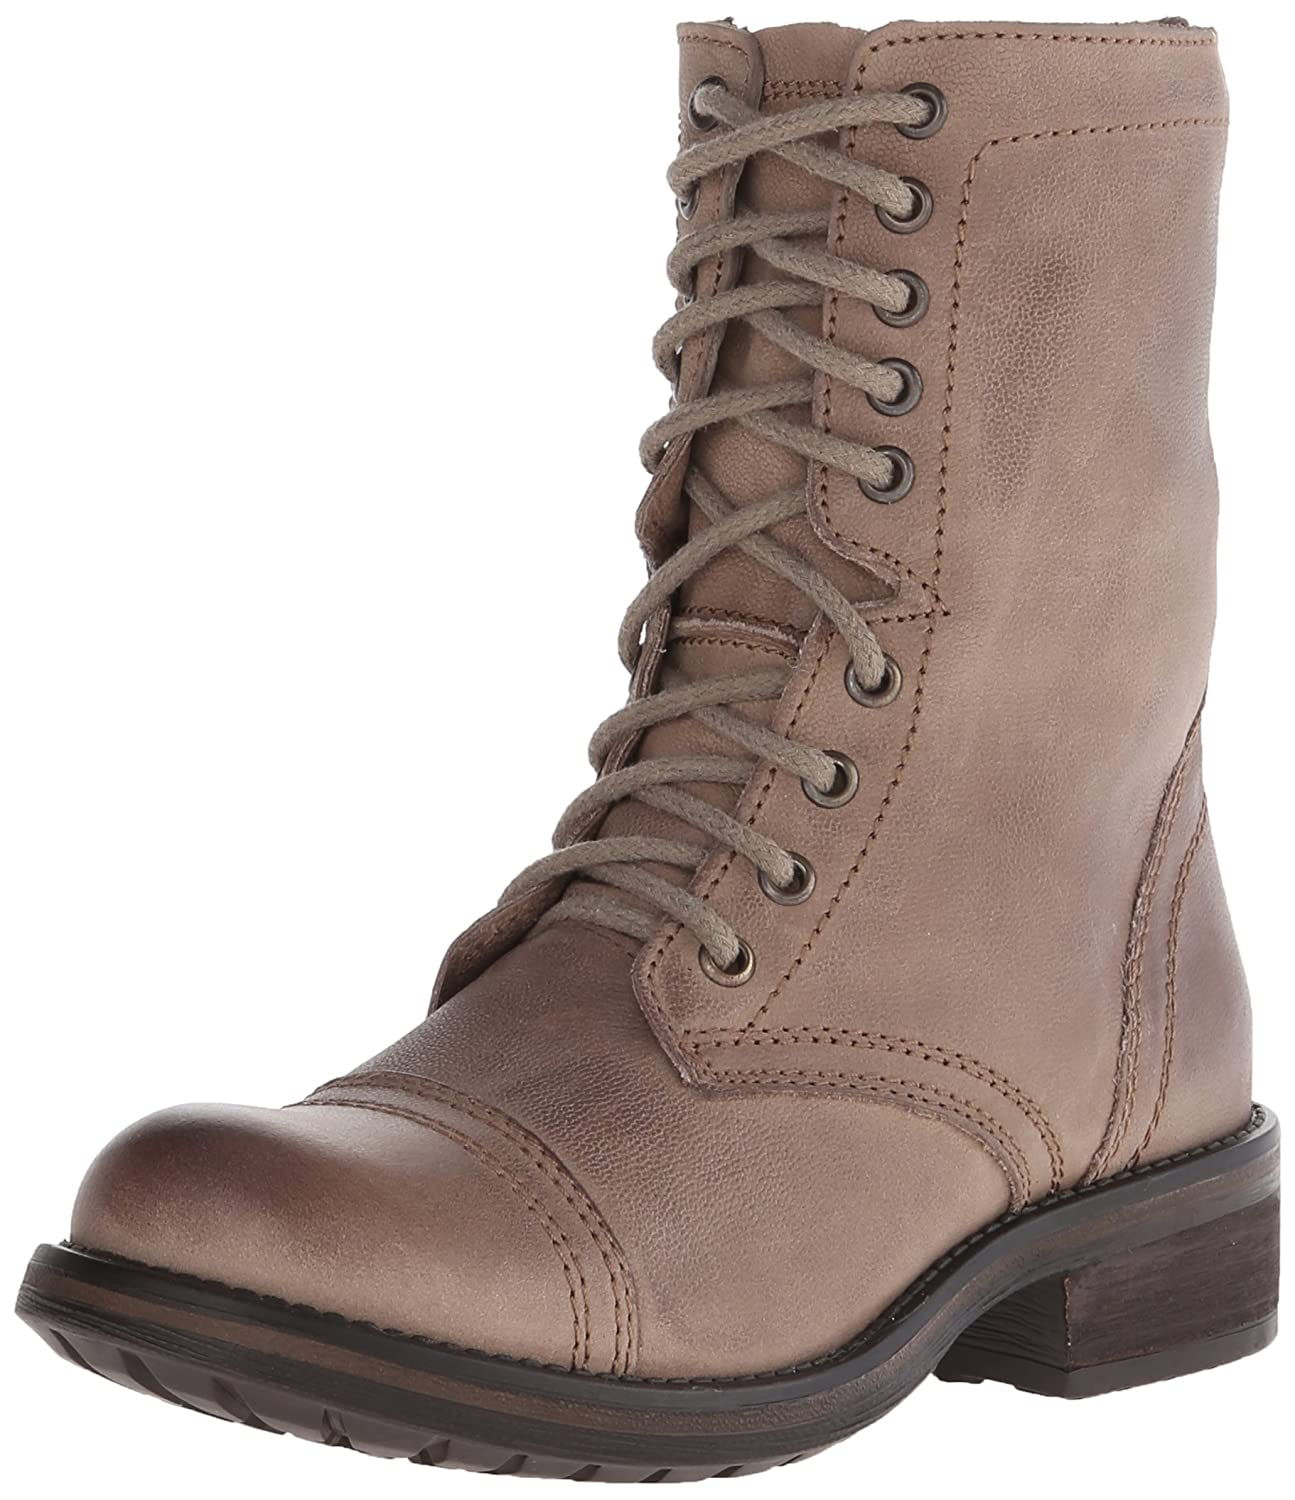 Steve Madden Women's Troopa 2.0 Combat Boot B00RY8V4GA 5.5 B(M) US|Stone Leather